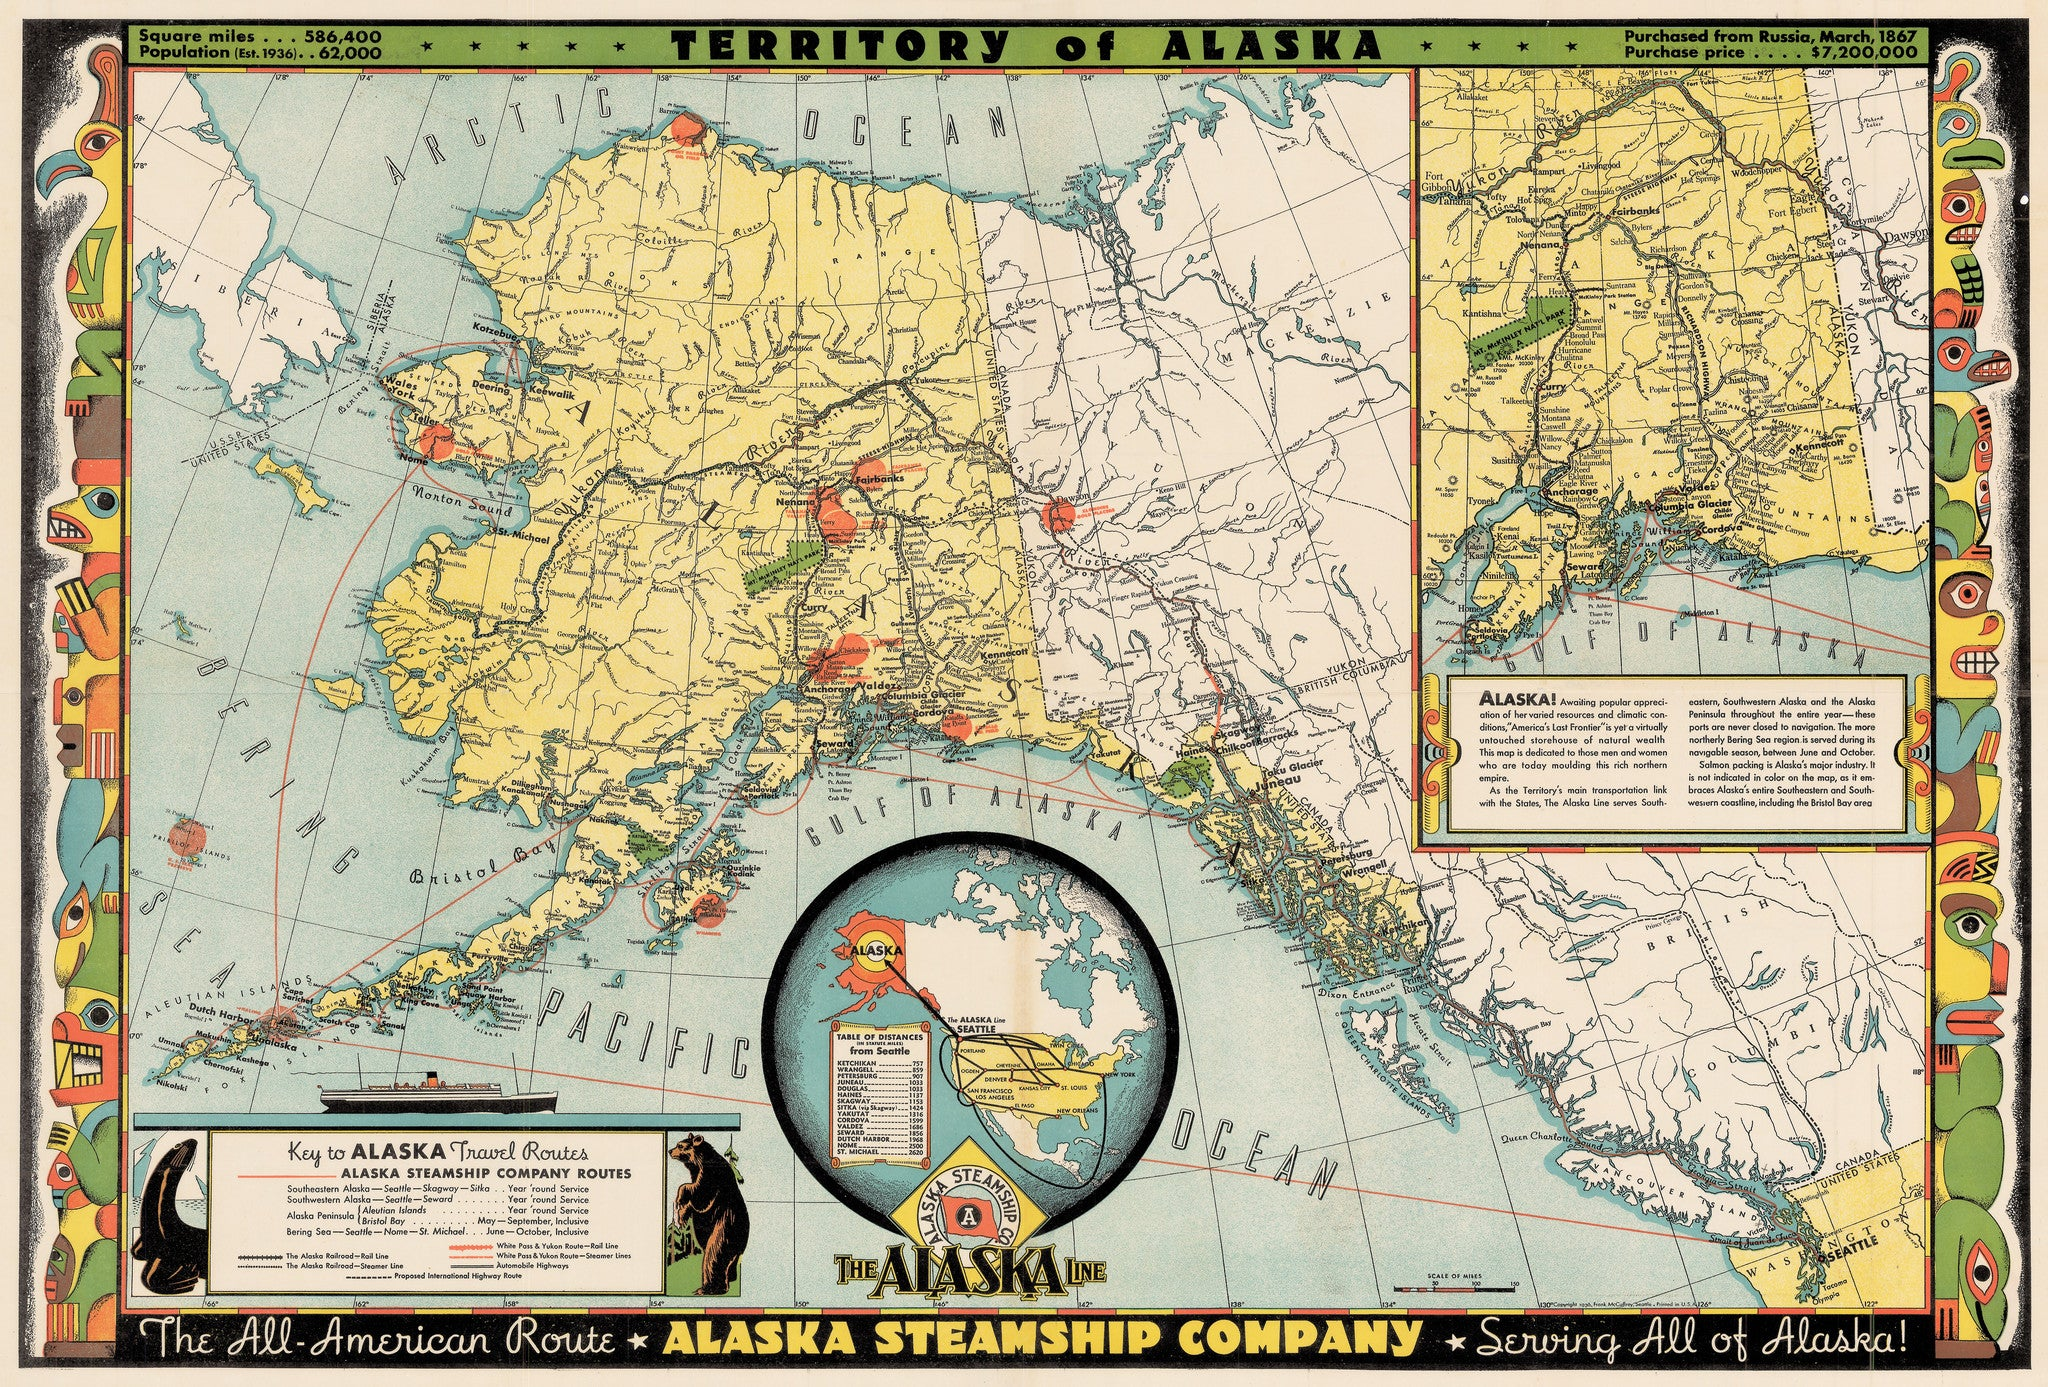 Authentic Antique Map of the Territory of Alaska: The Alaska Line: Alaska Steamship Co. By: Frank McCaffrey Date: 1936 (dated)